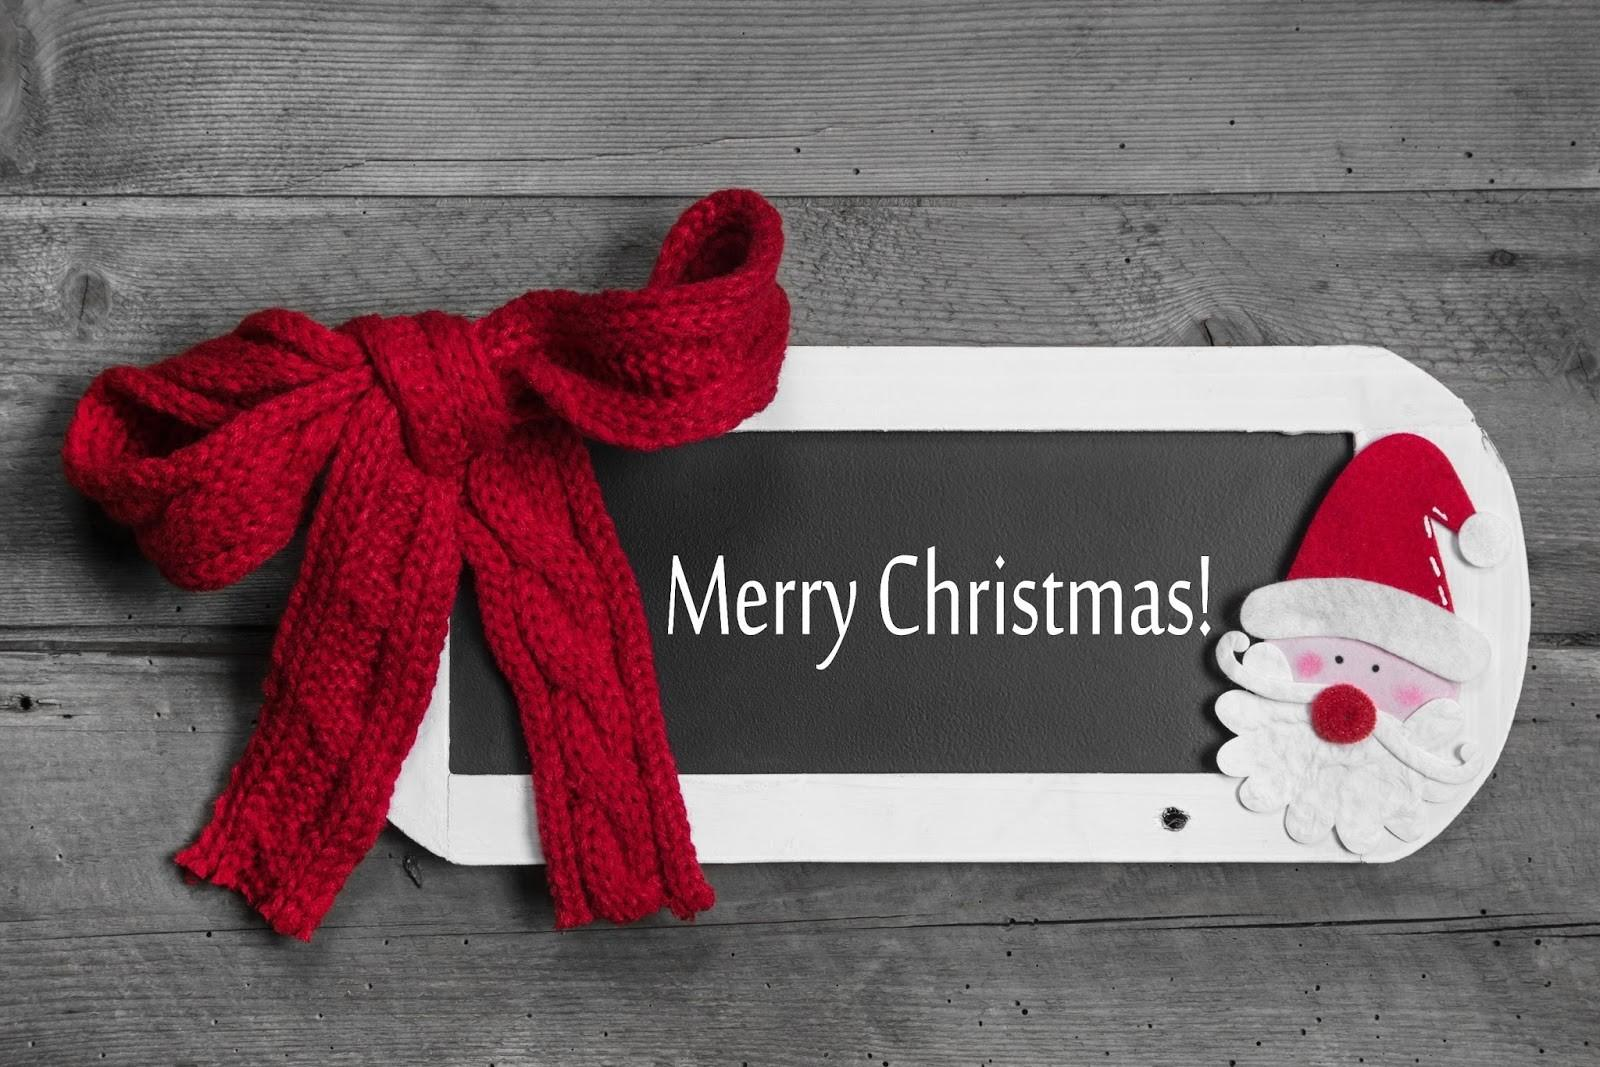 Best Merry Christmas Wishes Text Sharing